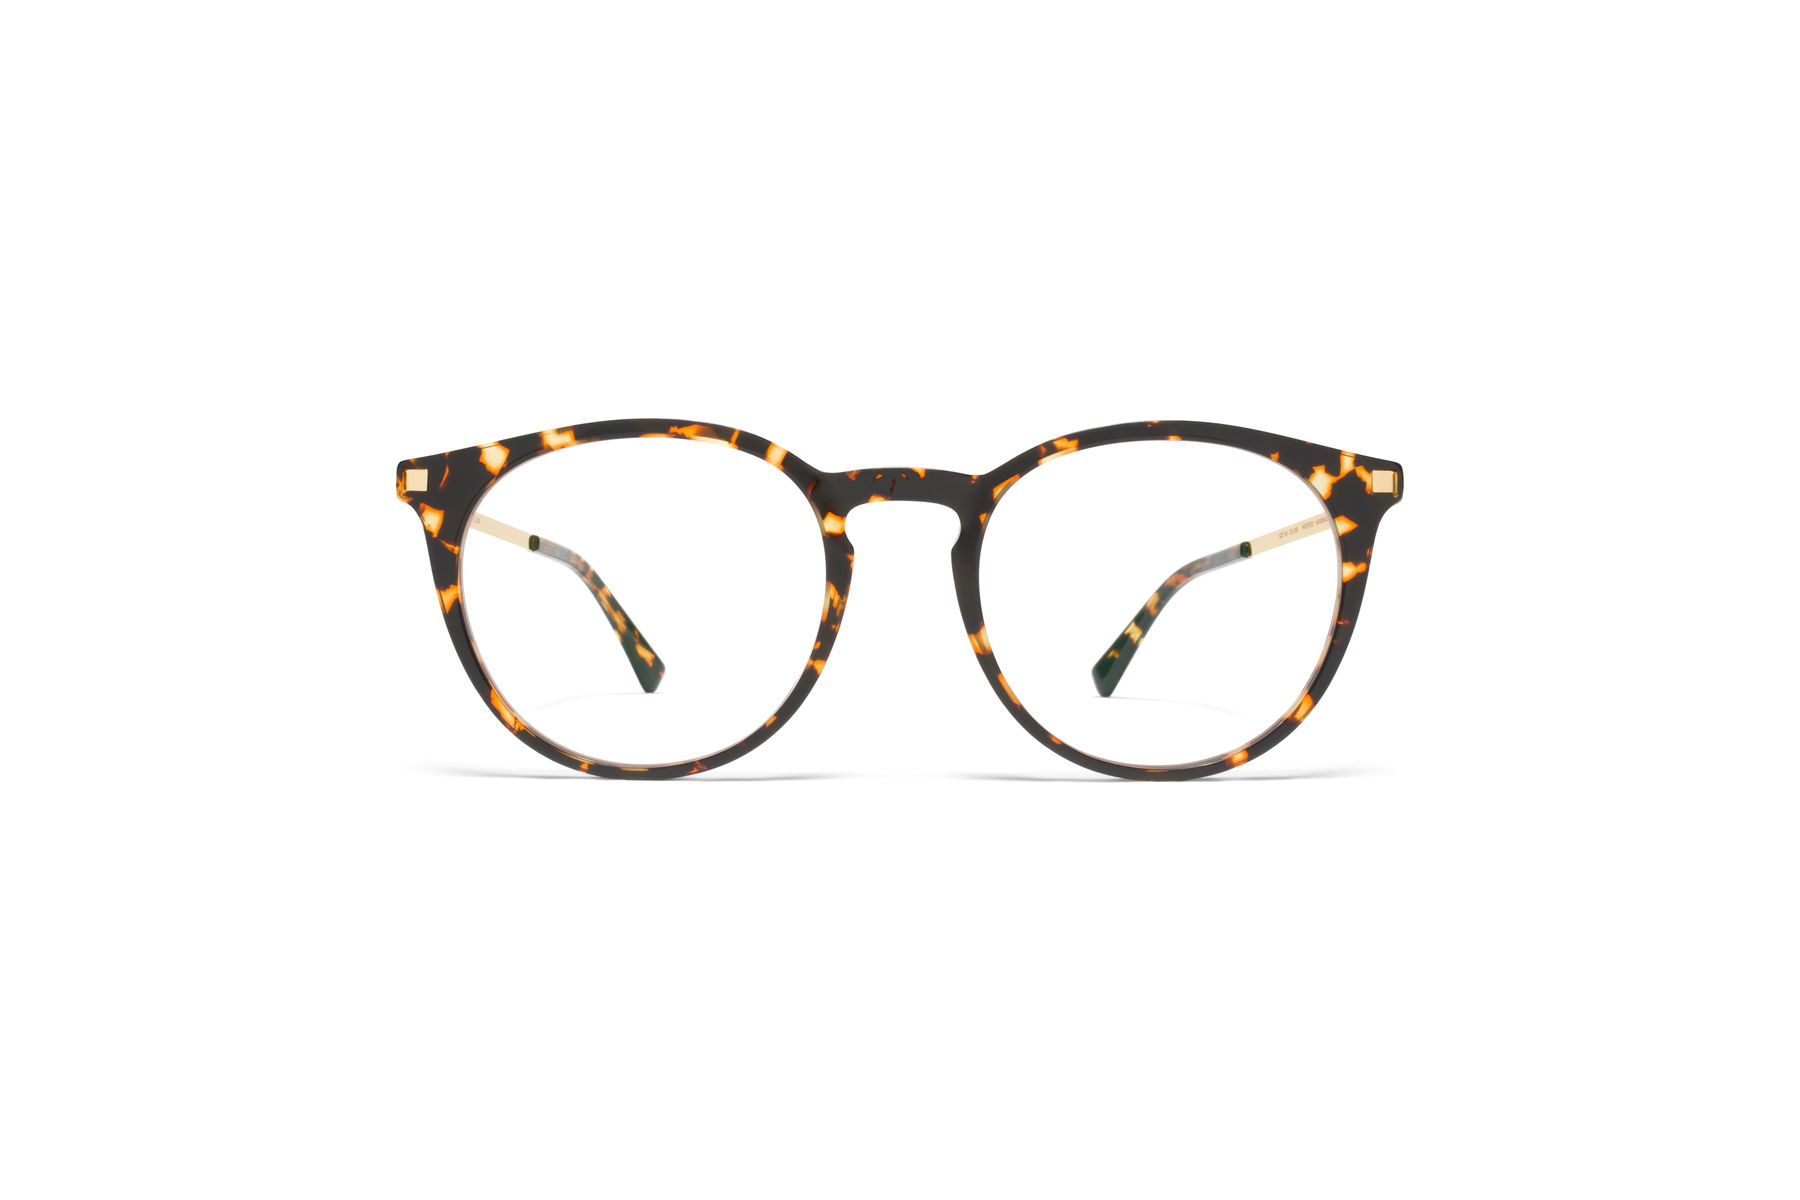 MYKITA LITE KEELUT - OPTICAL FRAME